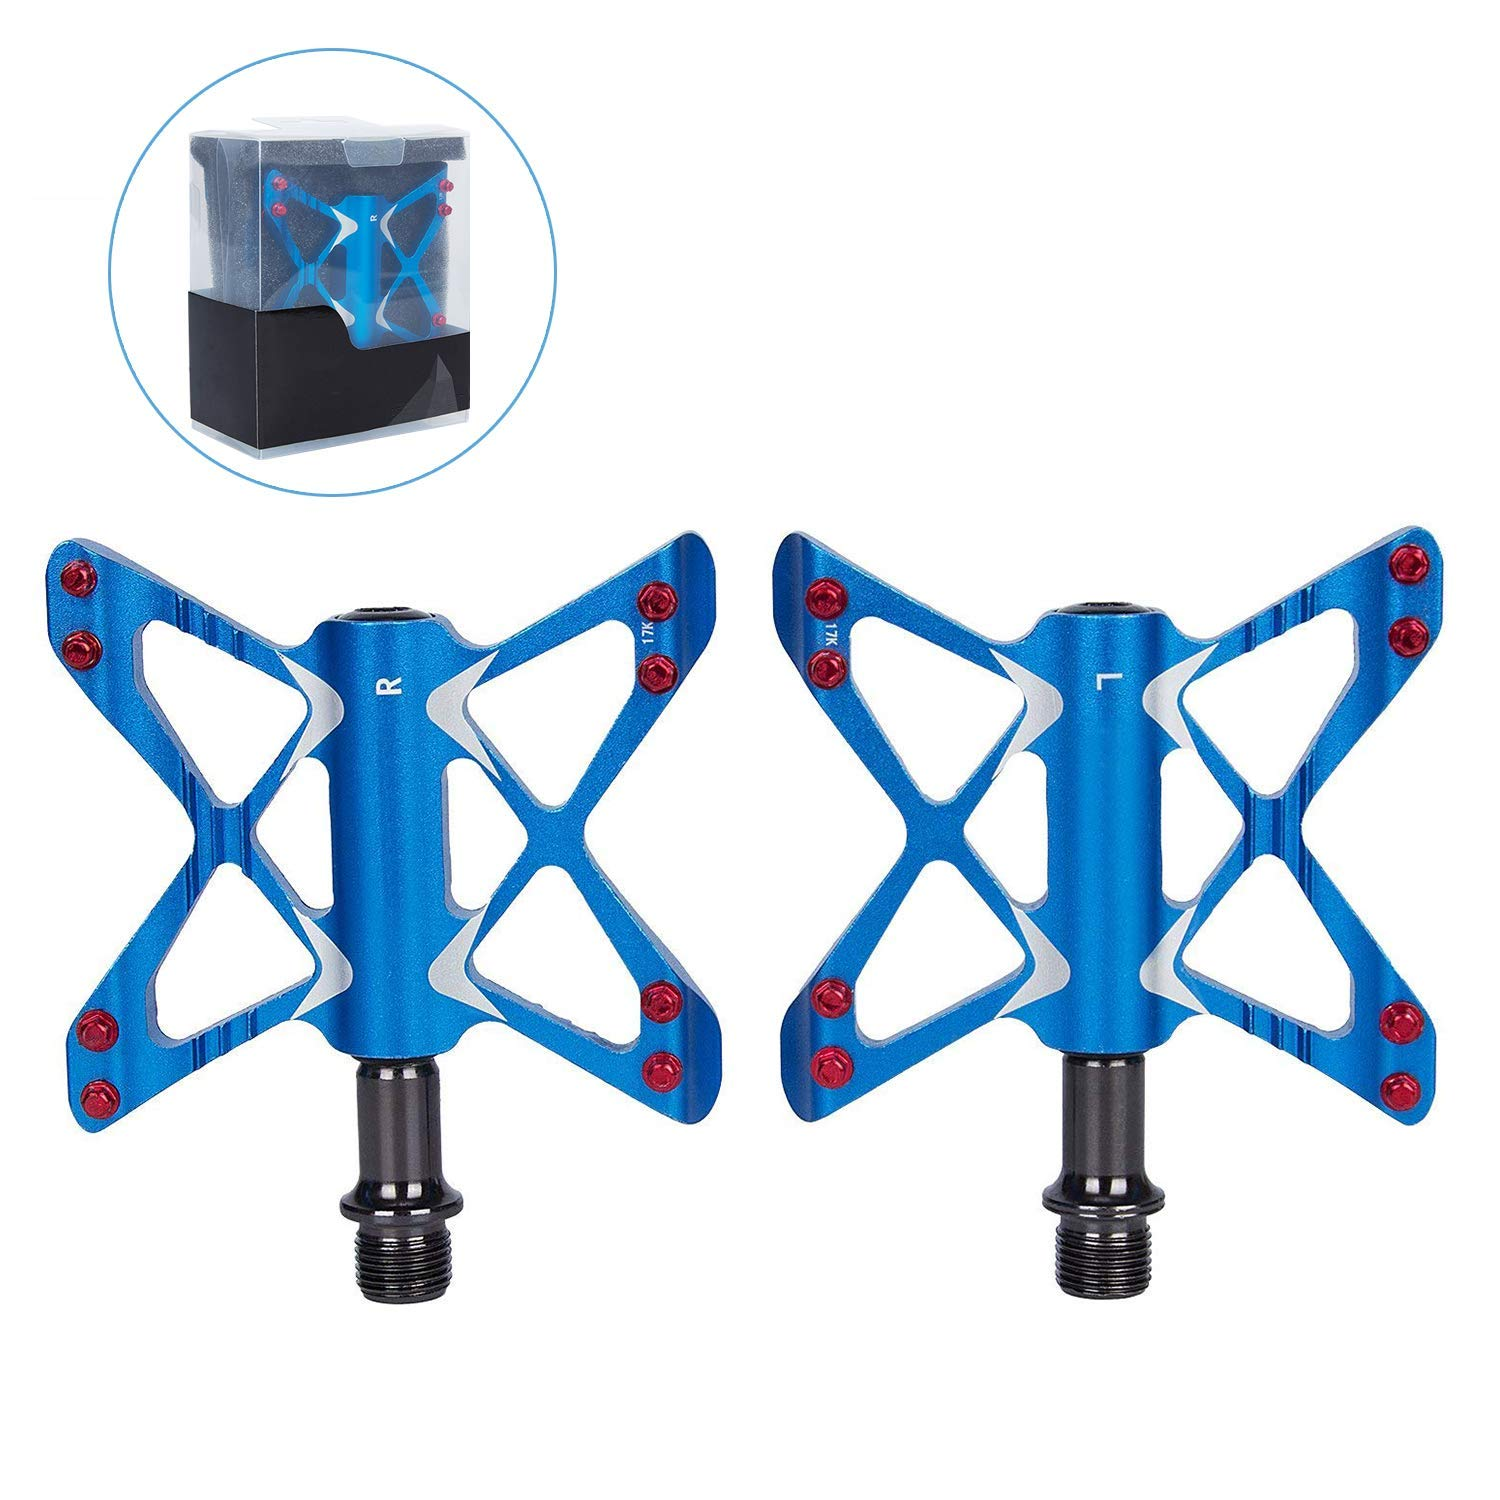 Hakkin Lightweight Bike Pedals,Mountain Bike Pedaling Easy Climbing with 16 Anti-skid Pins Aluminum Alloy Steel Flat-Platform,for Road & Folding Bikes, Urban Leisure Bicycles, Trail Bikes